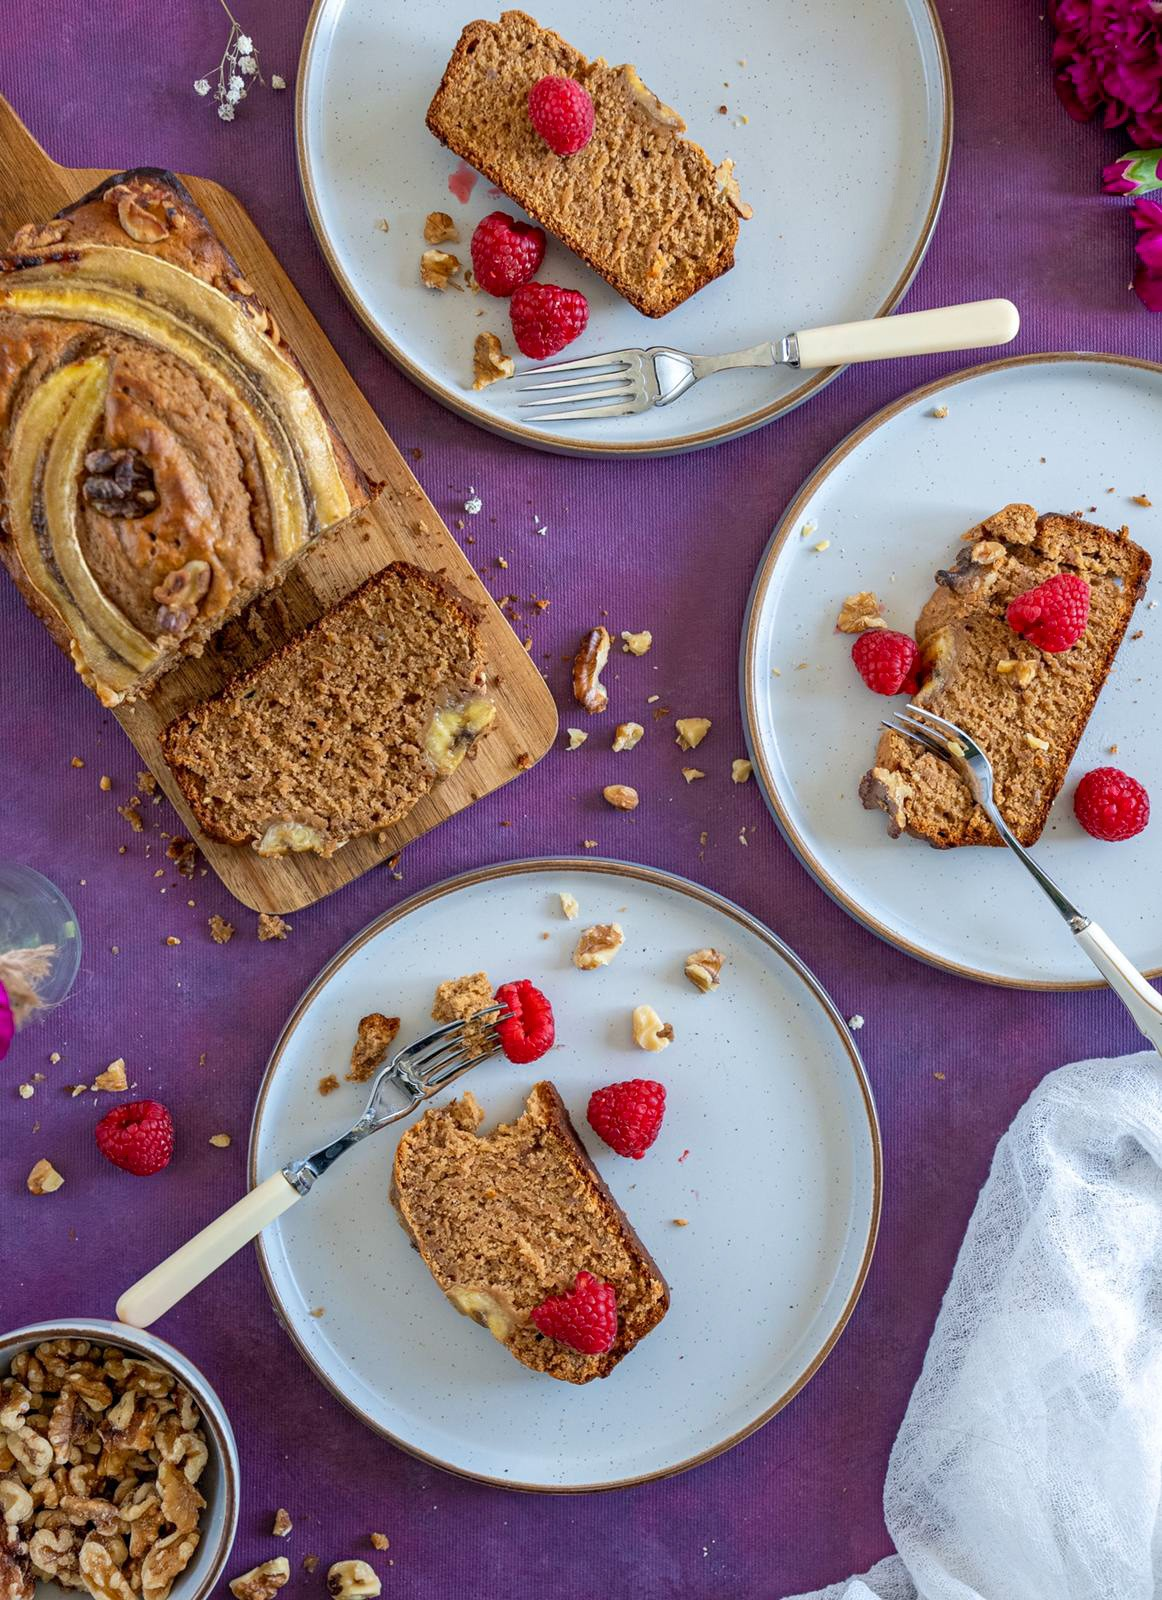 Food photographer Chelmsford, Essex - Banana Bread Food styling